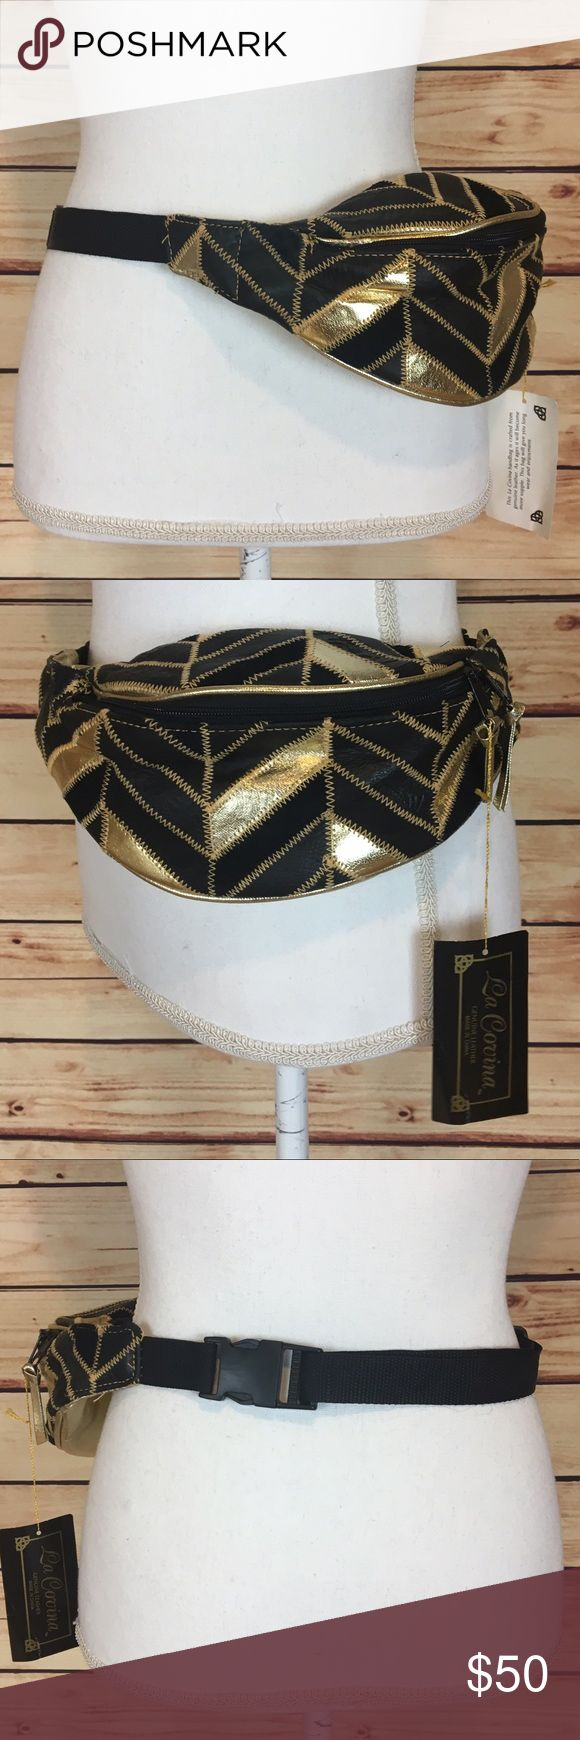 Vintage Deadstock La Covina Leather Fanny Pack Vintage deadstock fanny pack with tags. Genuine leather. Black and gold chevron pattern. Gold back. Fabric belt. Adjustable. By La Covina. One size fits most. Never used, perfect condition. No trades, make me an offer! La Covina Bags